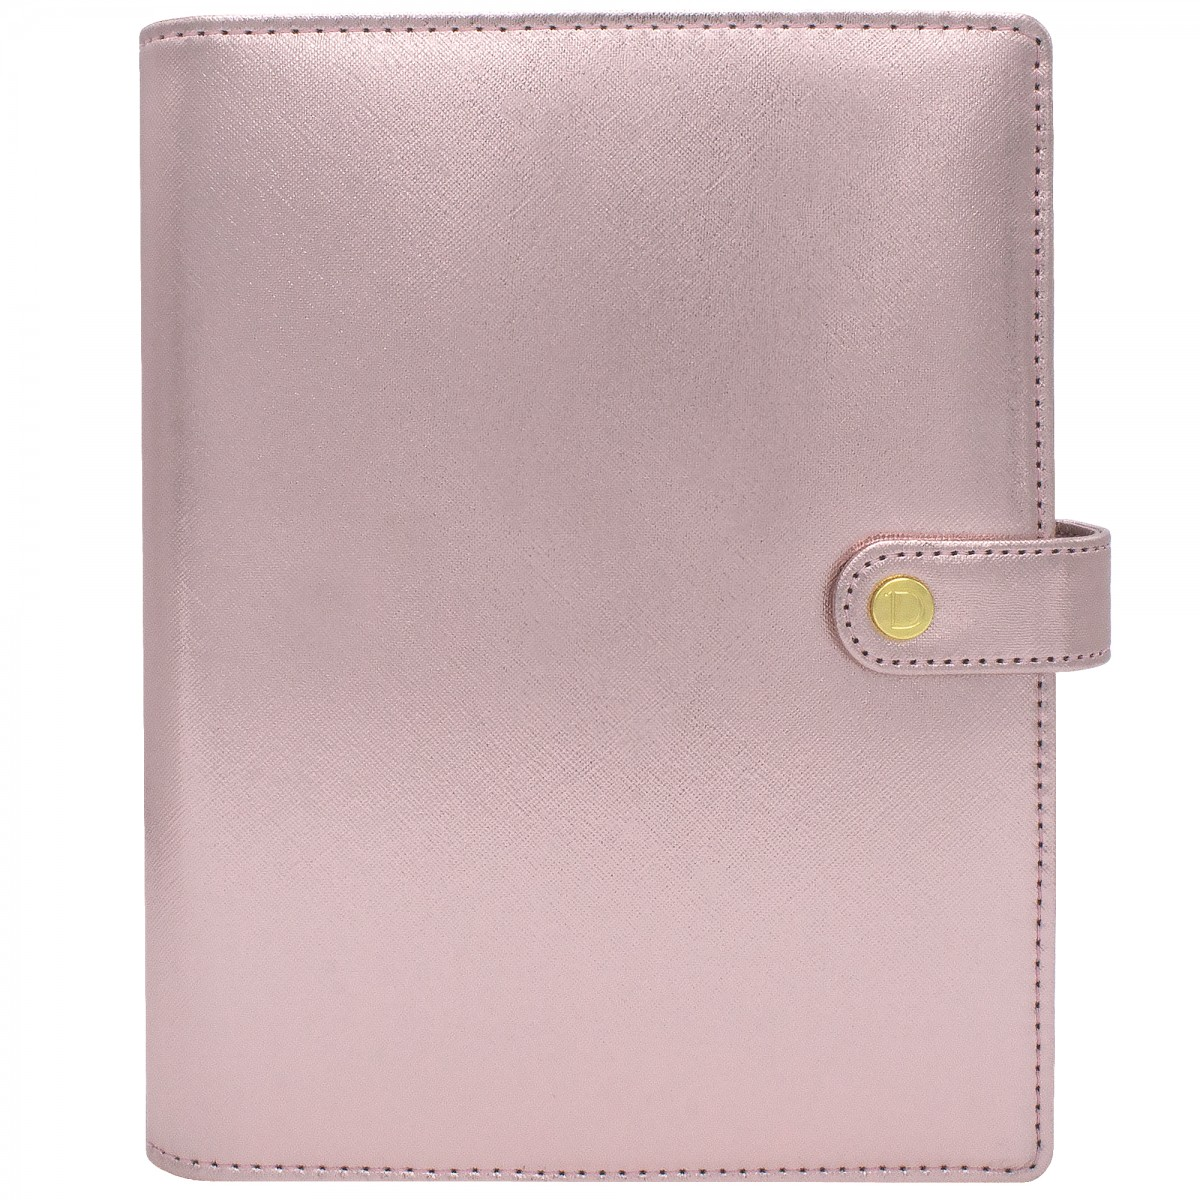 DISCAGENDA DIVA ROSEGOLD DISCBOUND LARGE SNAP CLOSURE